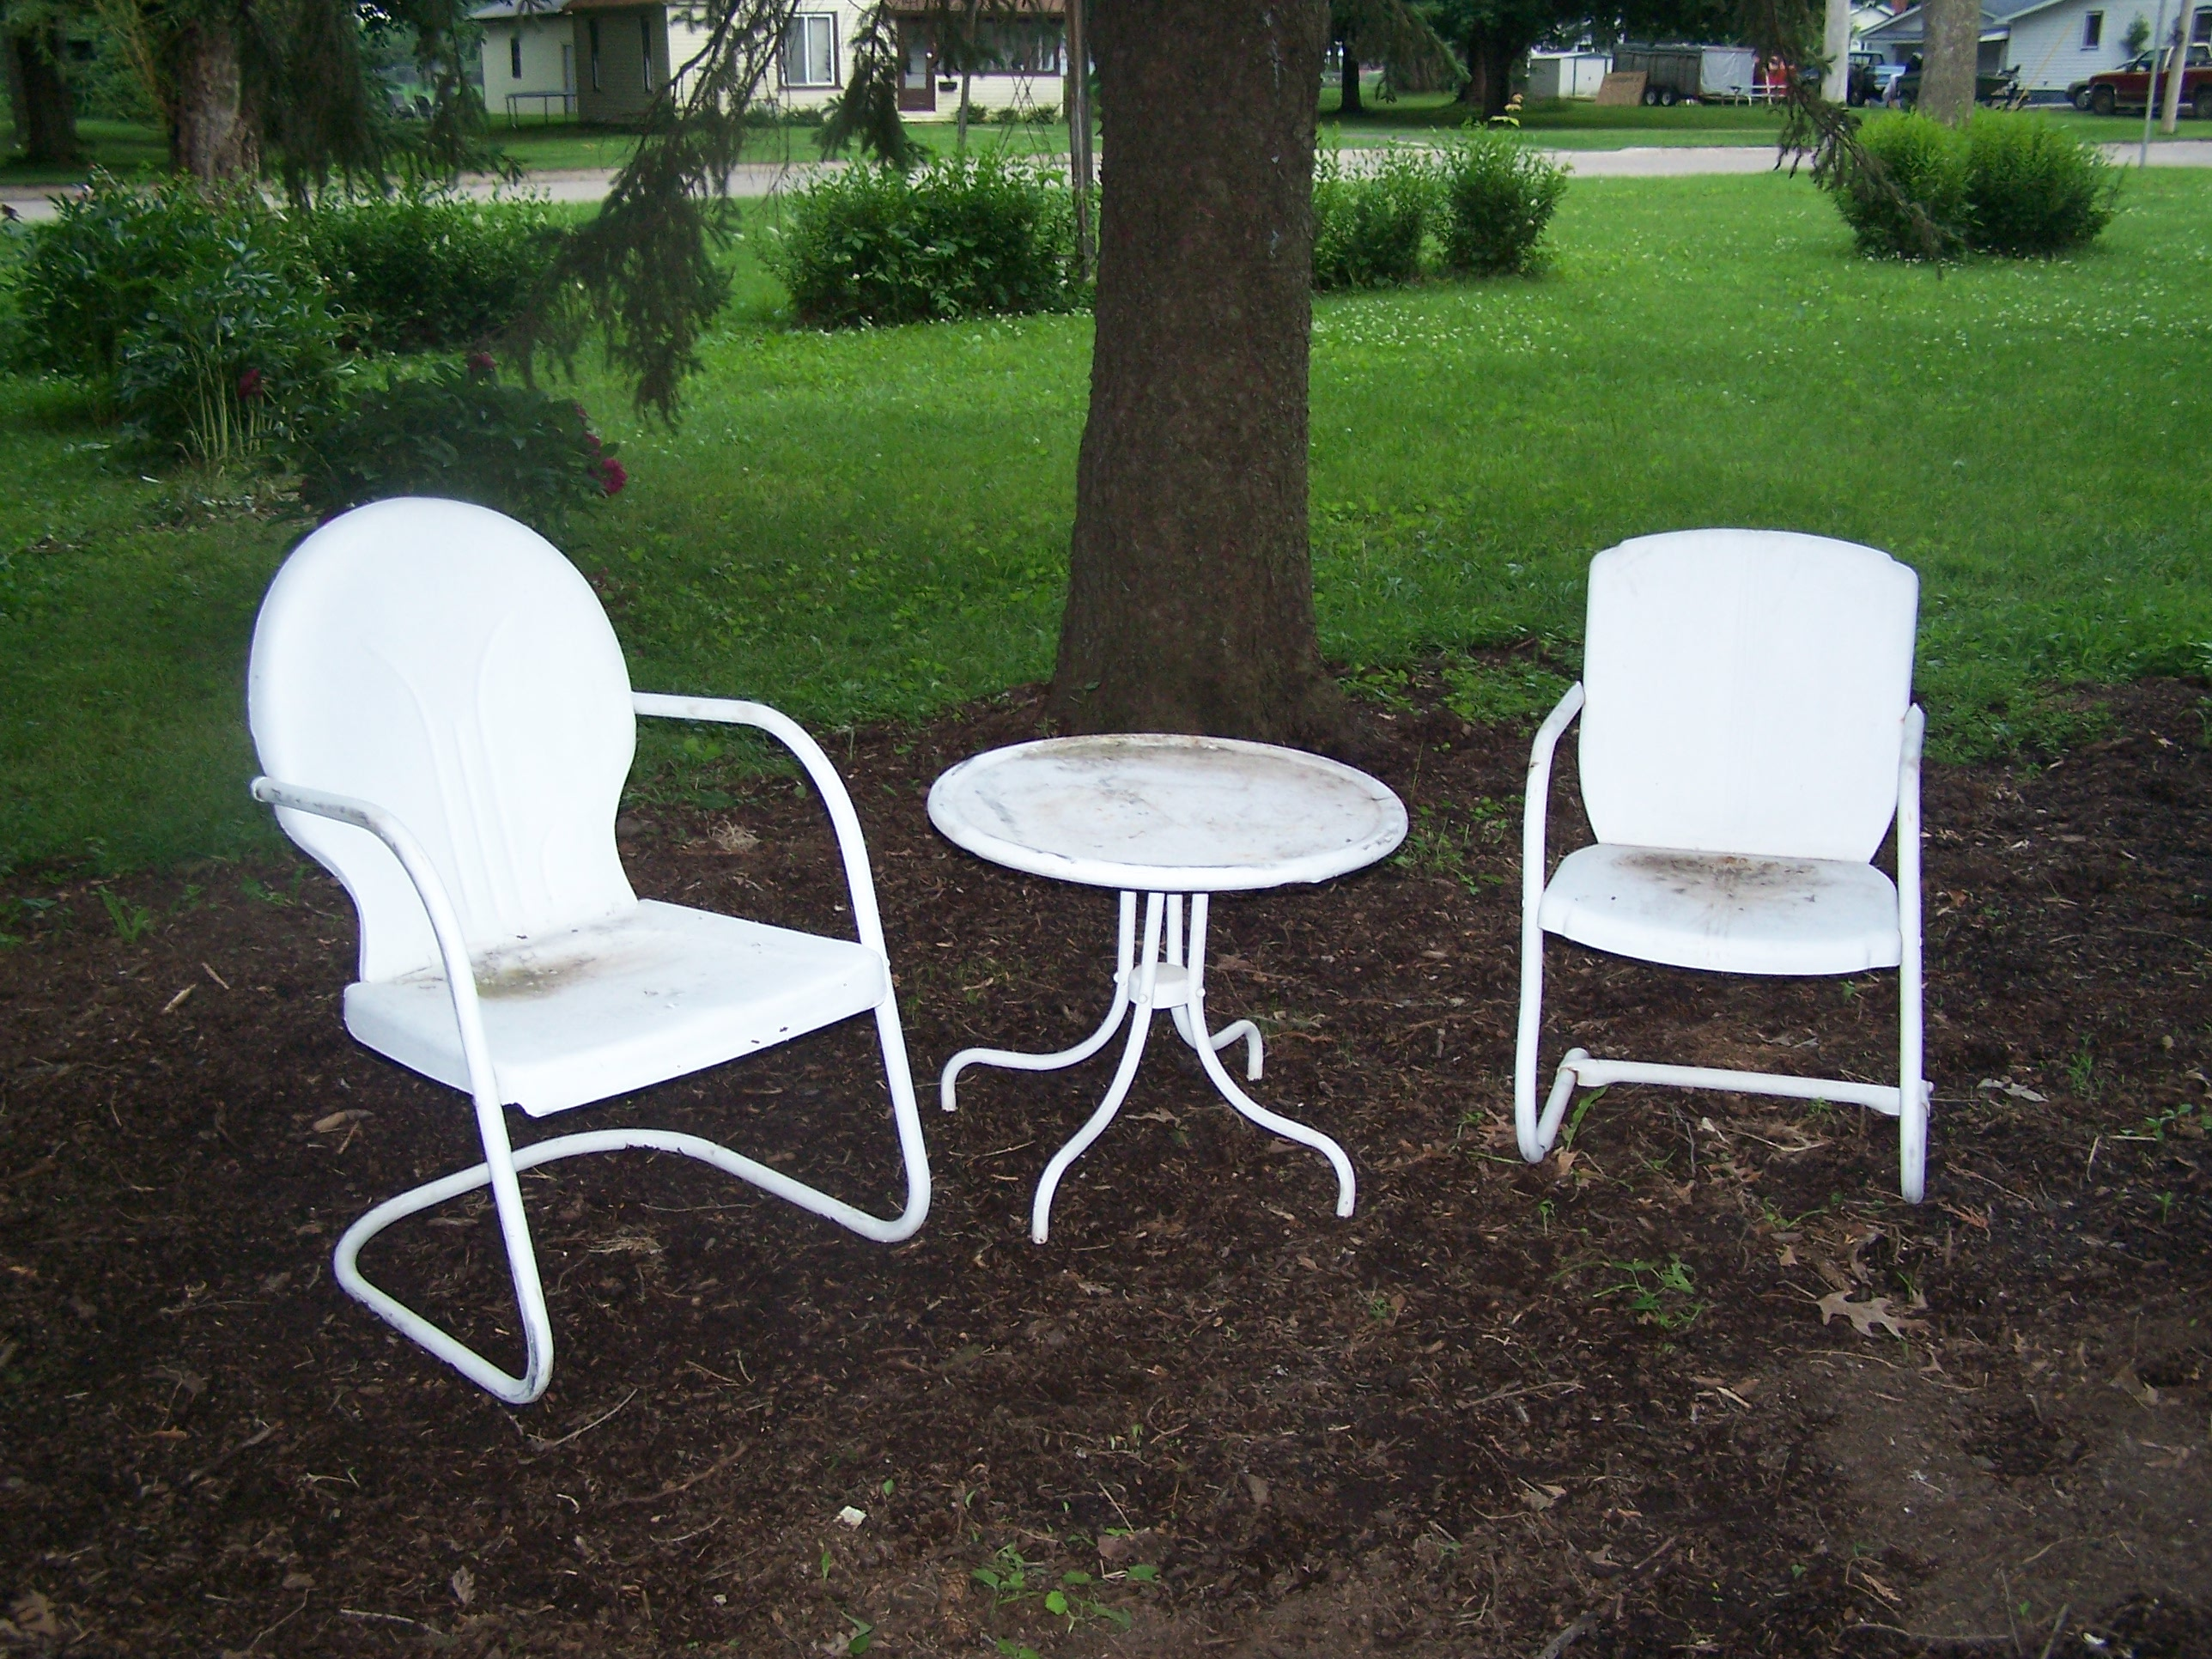 lawn furniture 28 images cleaning outdoor furniture diy sonax harrison patio chairs by oj. Black Bedroom Furniture Sets. Home Design Ideas